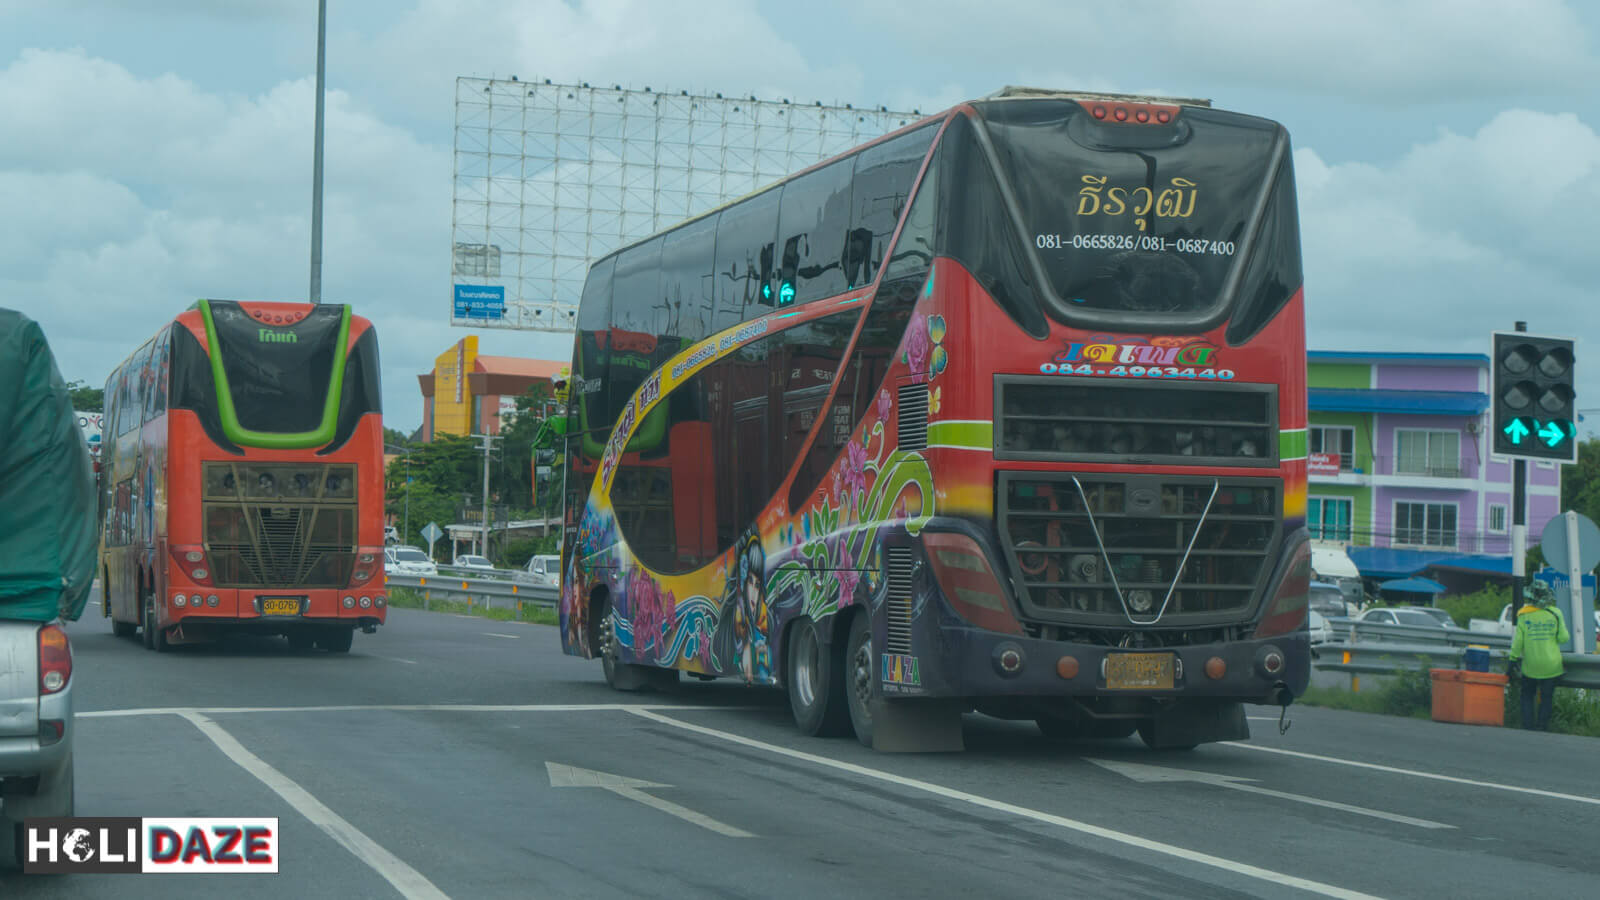 Thai buses driving down the highway